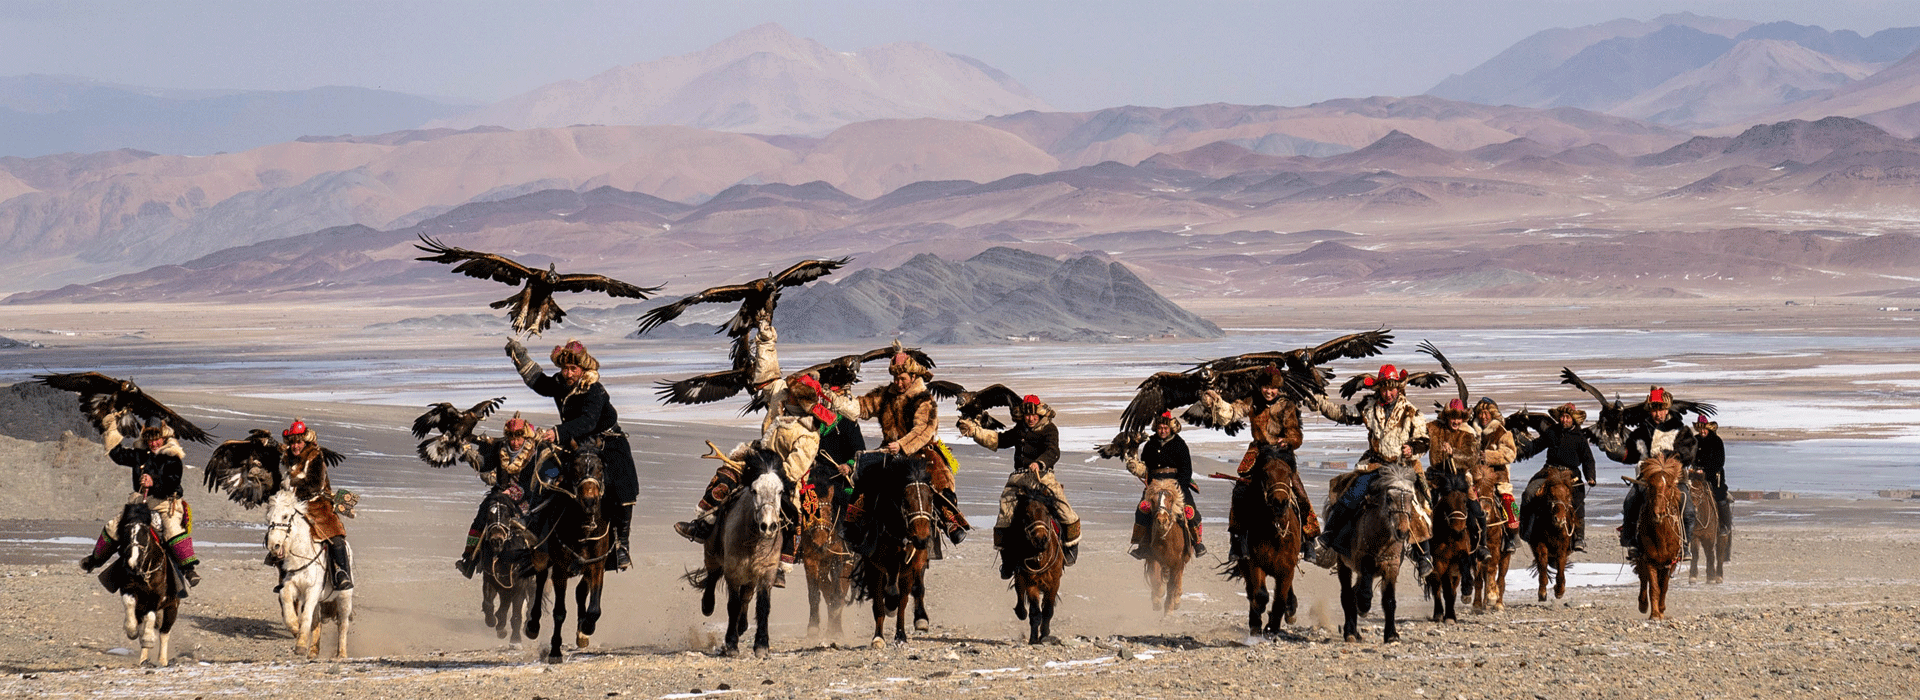 eagle hunters, eagle hunters in Mongolia, kazakh eagle hunters